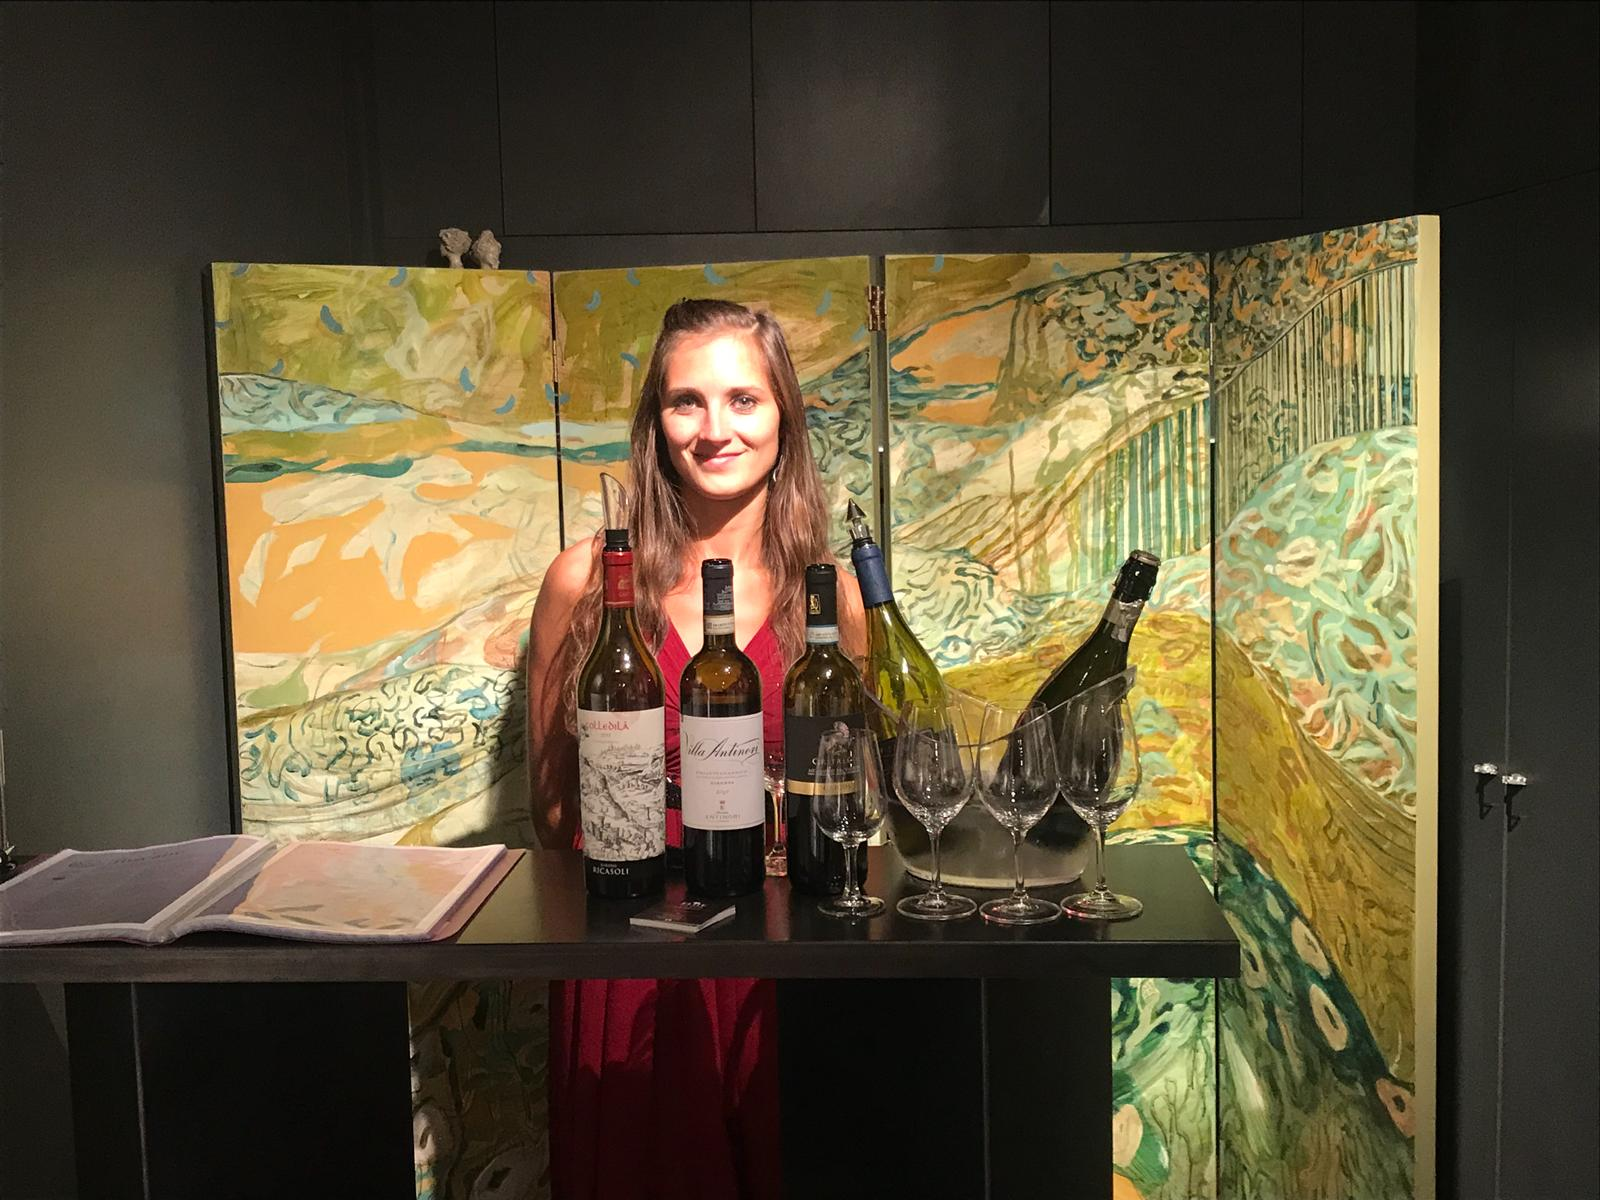 Elite wine tasting vernissage photo